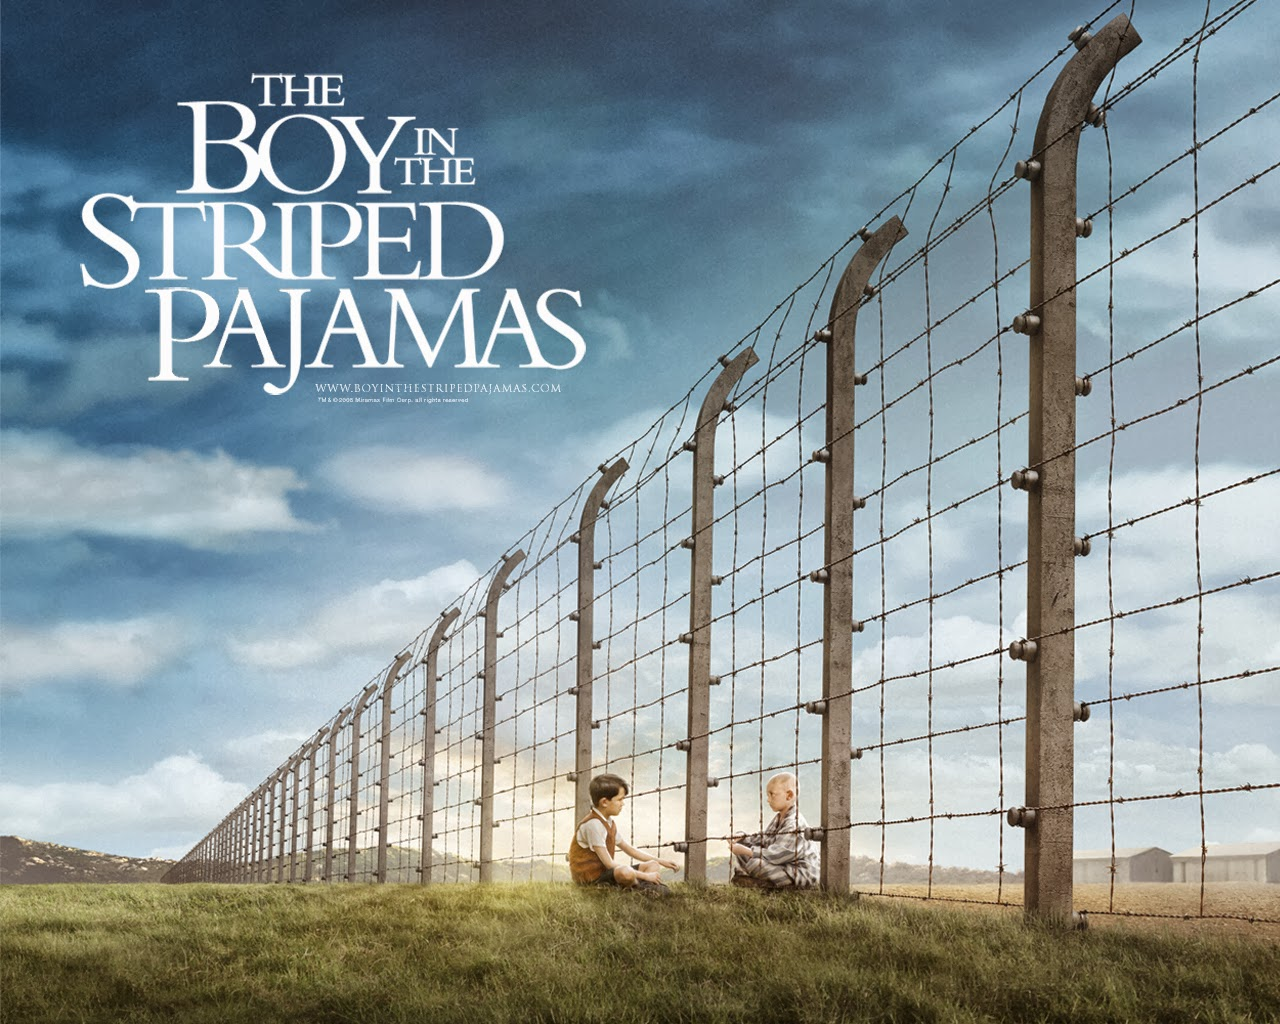 Amazoncom: The Boy In the Striped Pajamas Movie